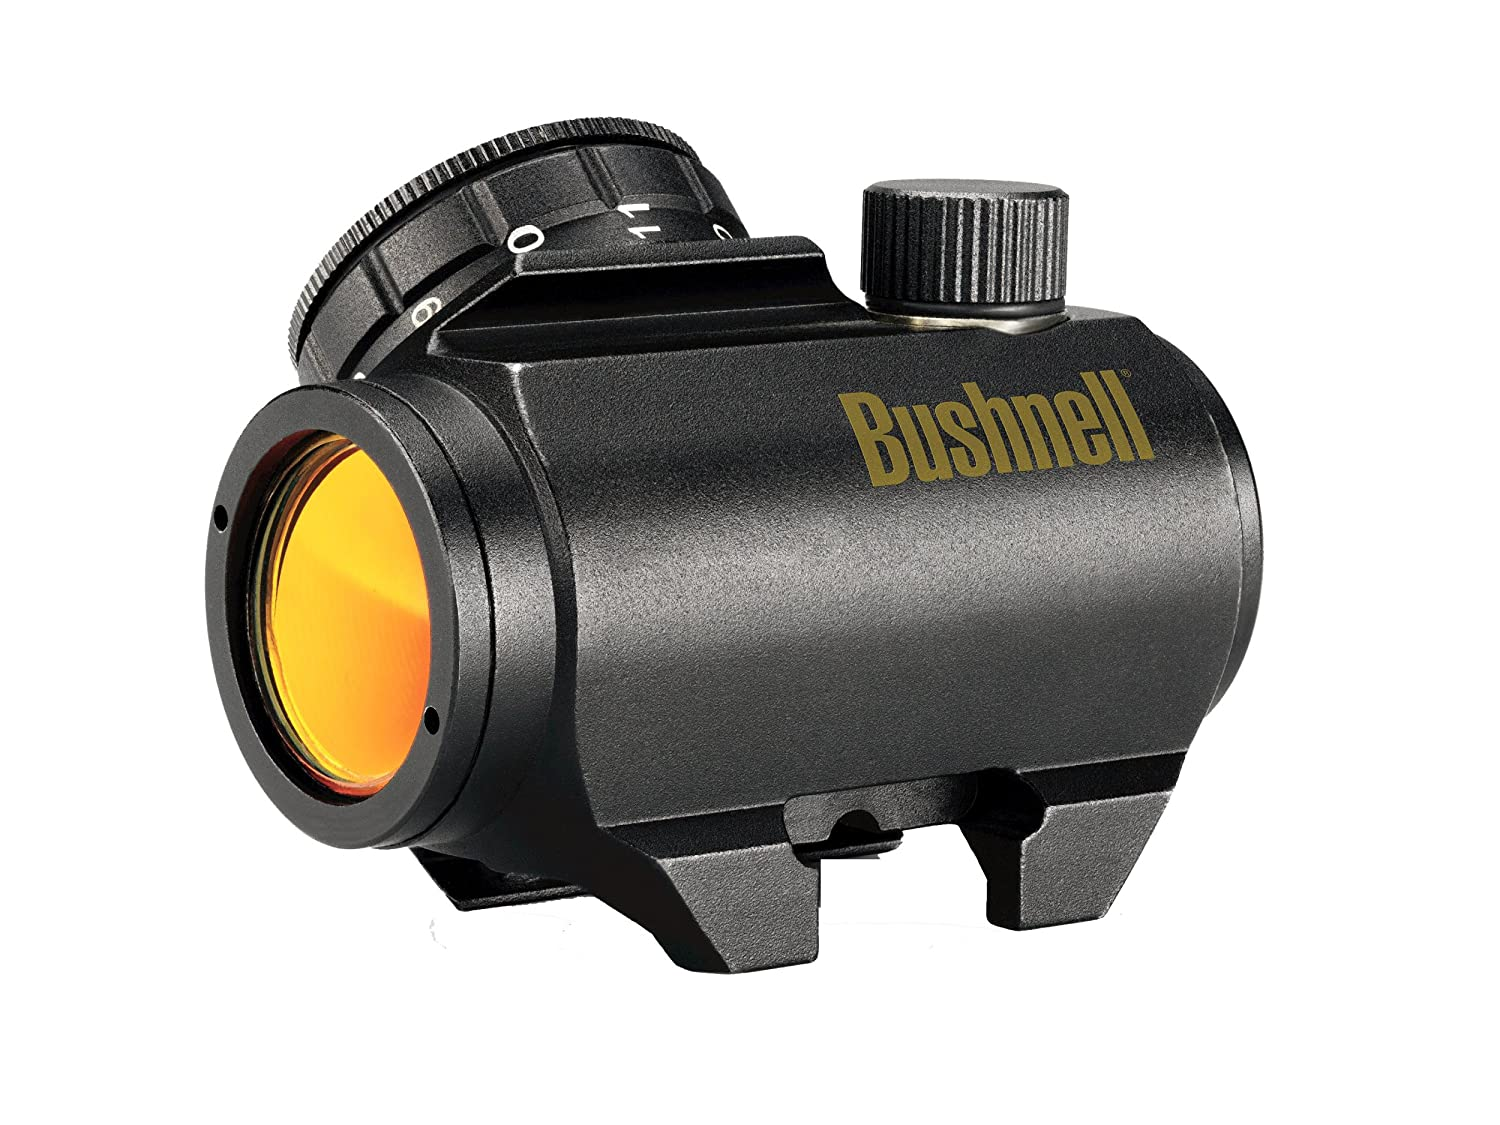 Bushnell Trophy Trs 25 Red Dot